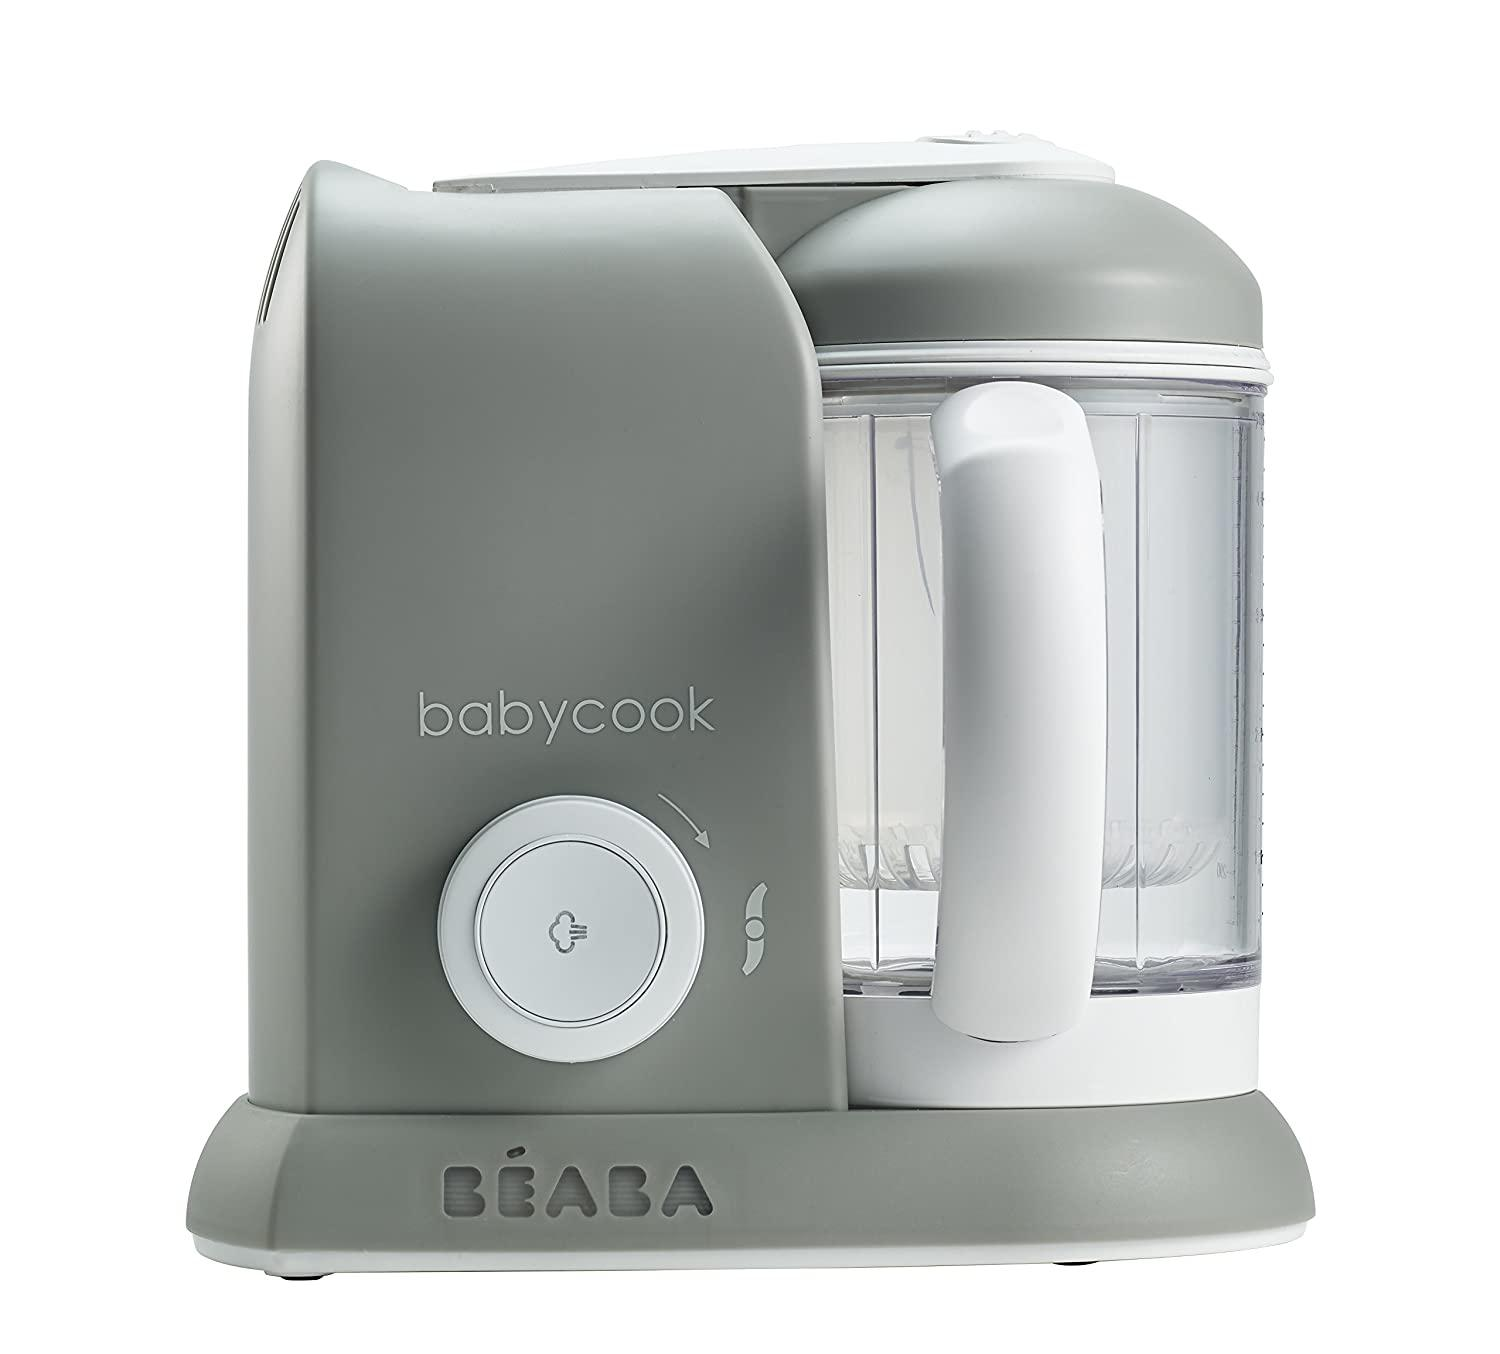 The BEABA Babycook 4-in-1 Steam Cooker and Blender